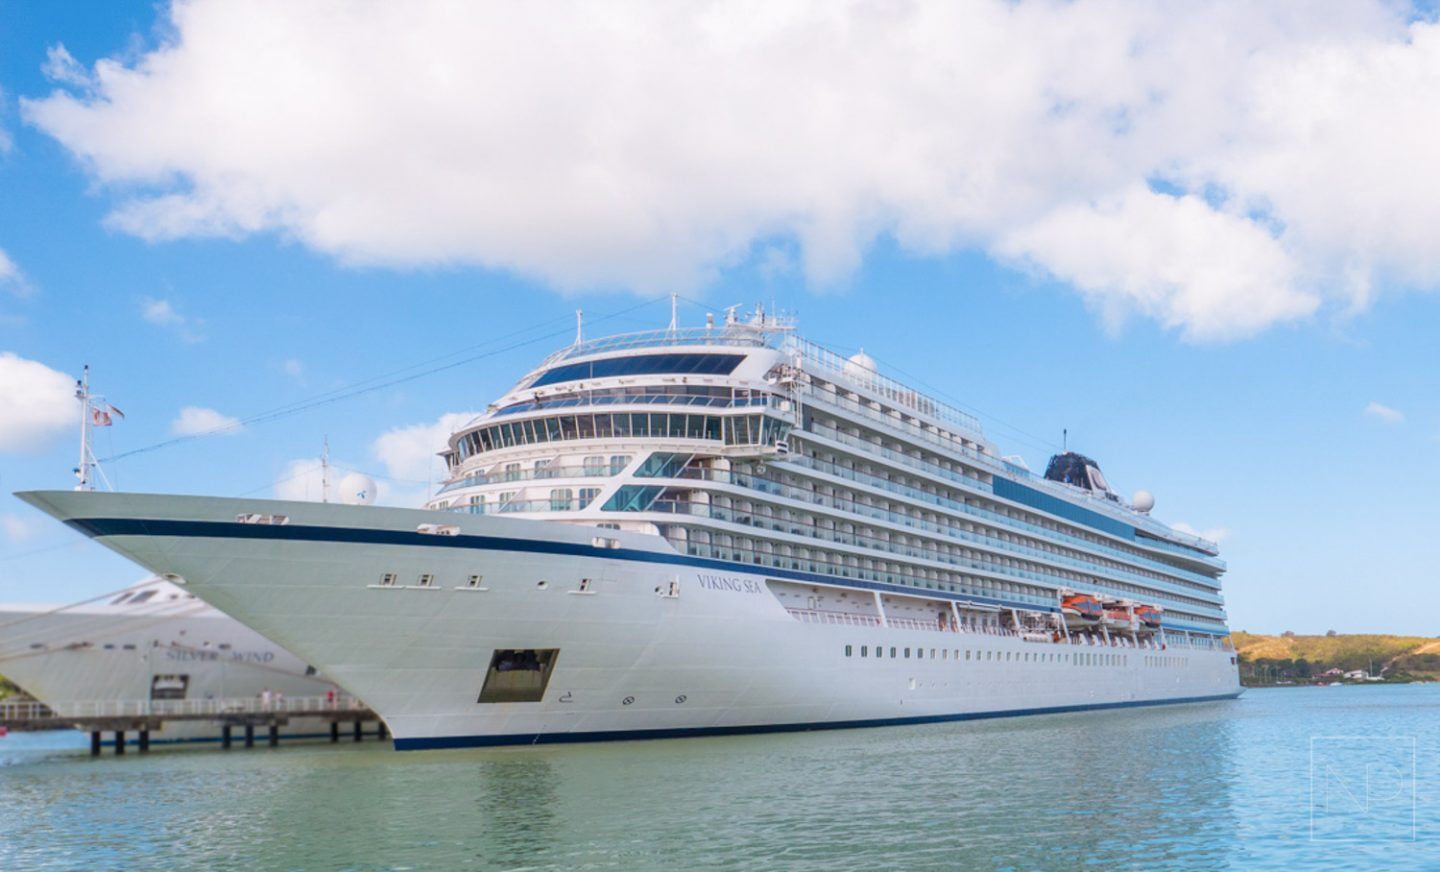 Viking Cruises, Viking Sea ship docked in The Caribbean